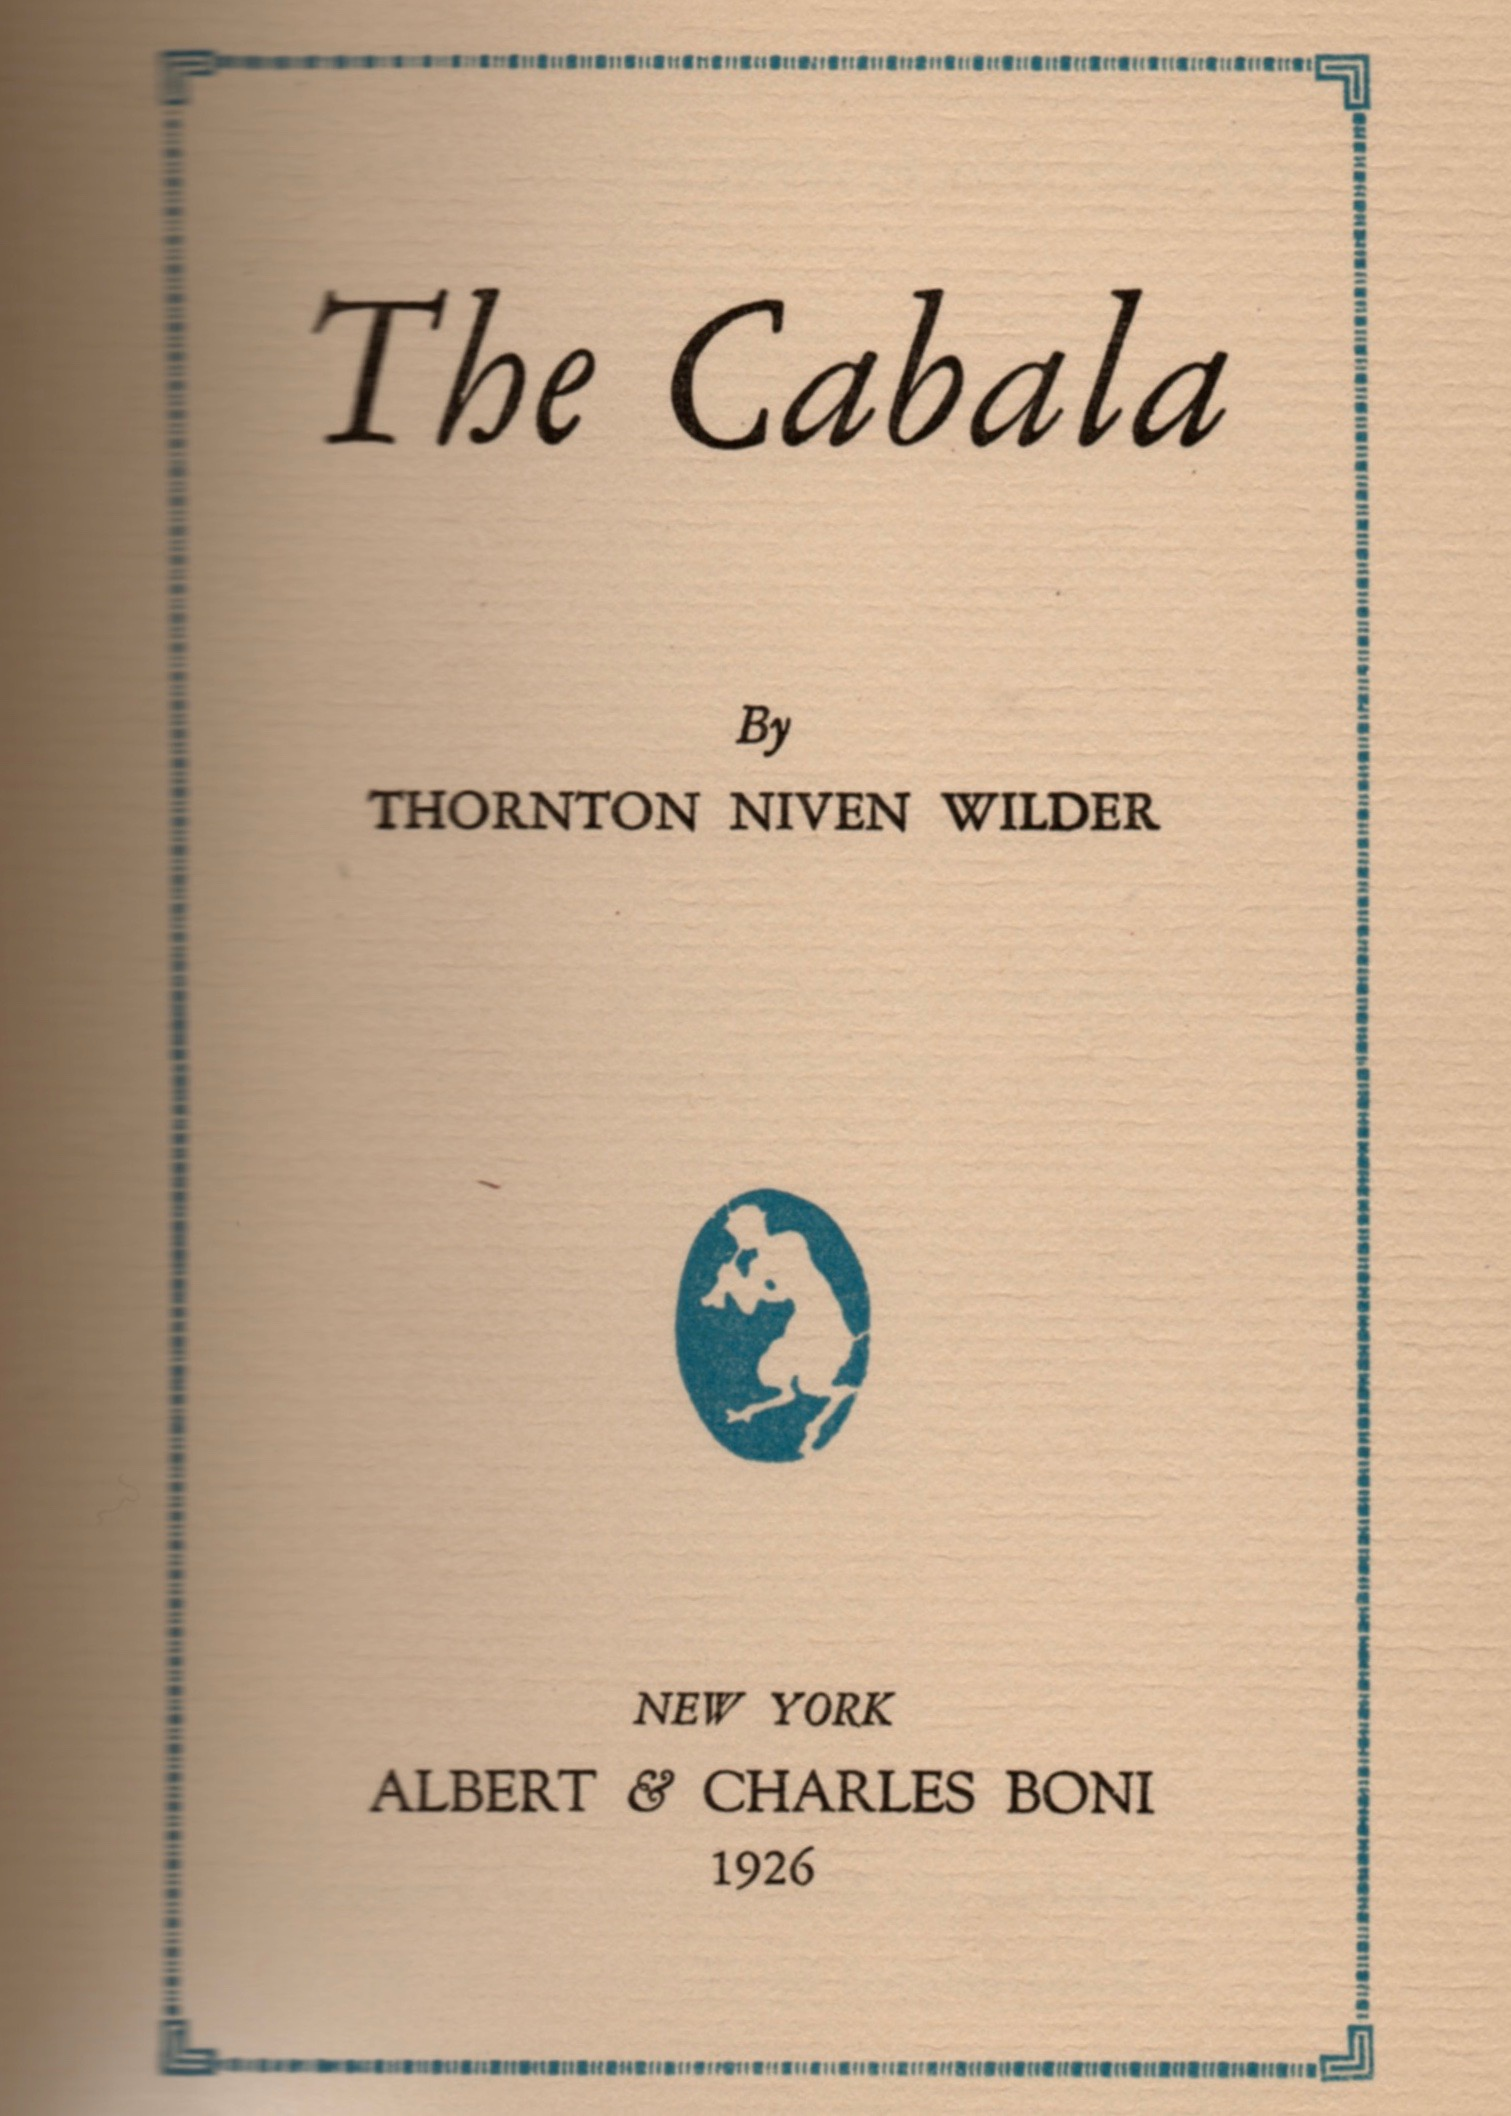 The title page to Vincent Starrett's first edition copy of Thornton Wilder's The Cabala